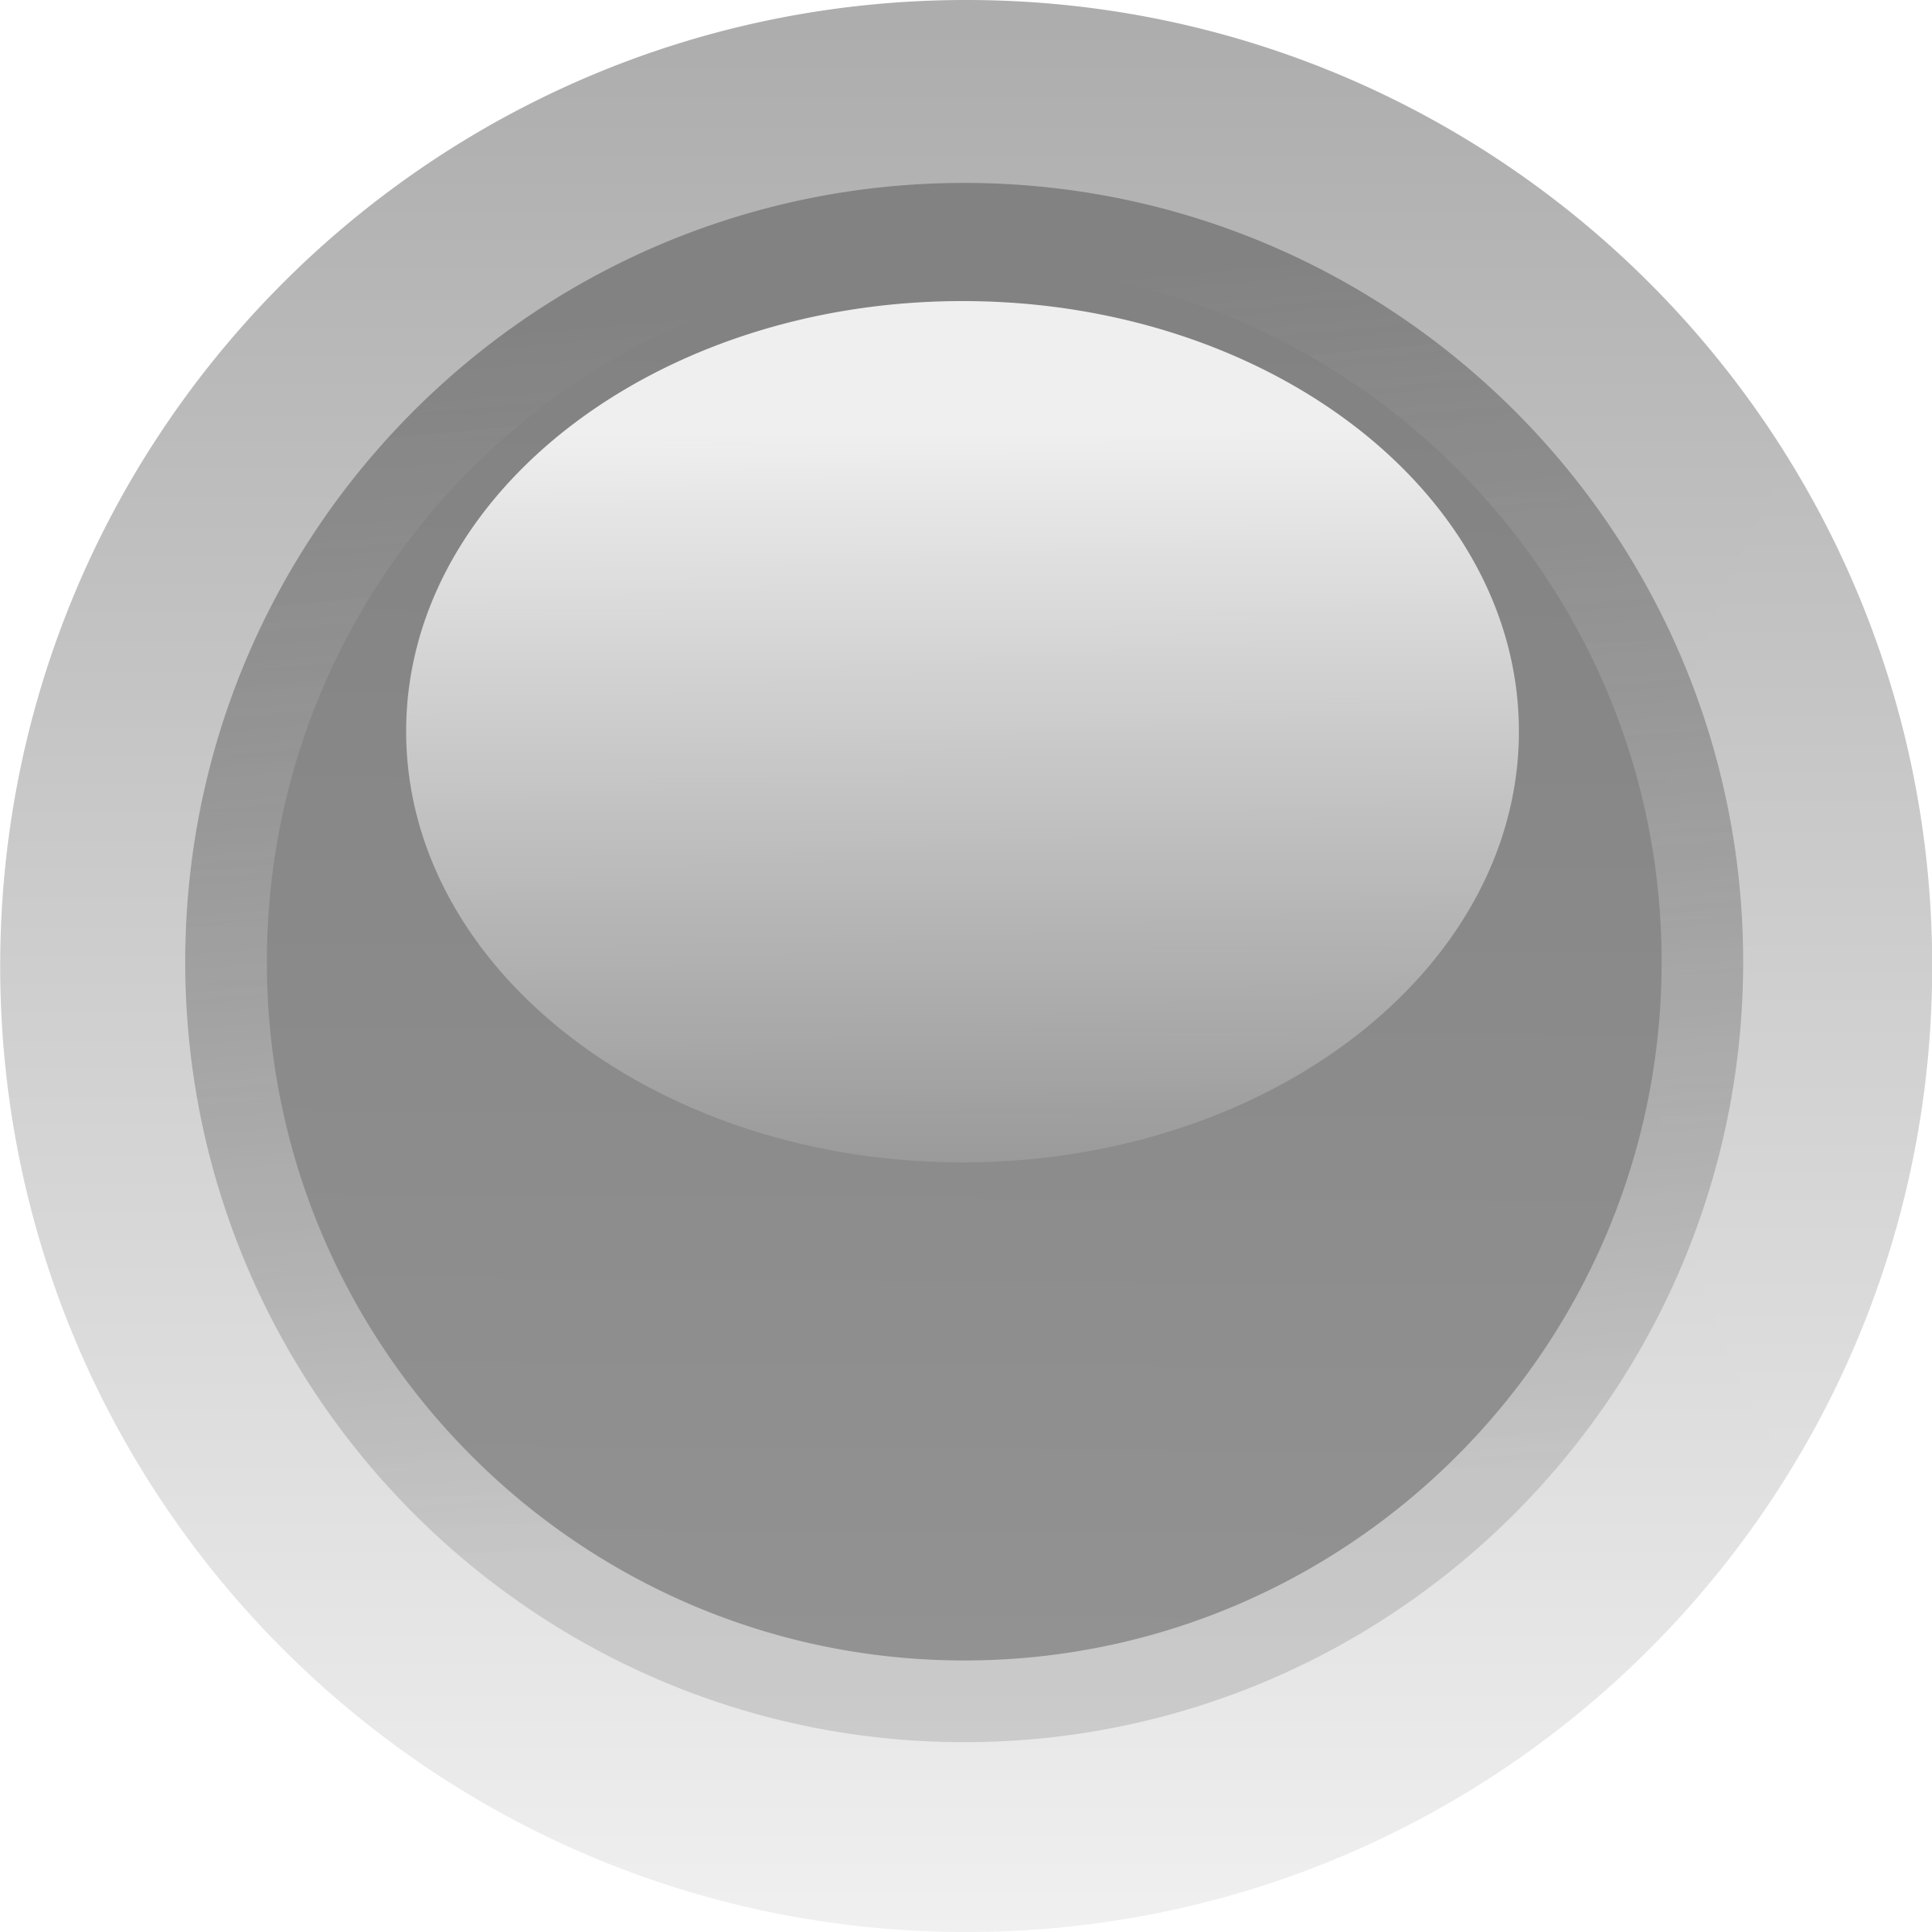 Generic round LED by morkaitehred